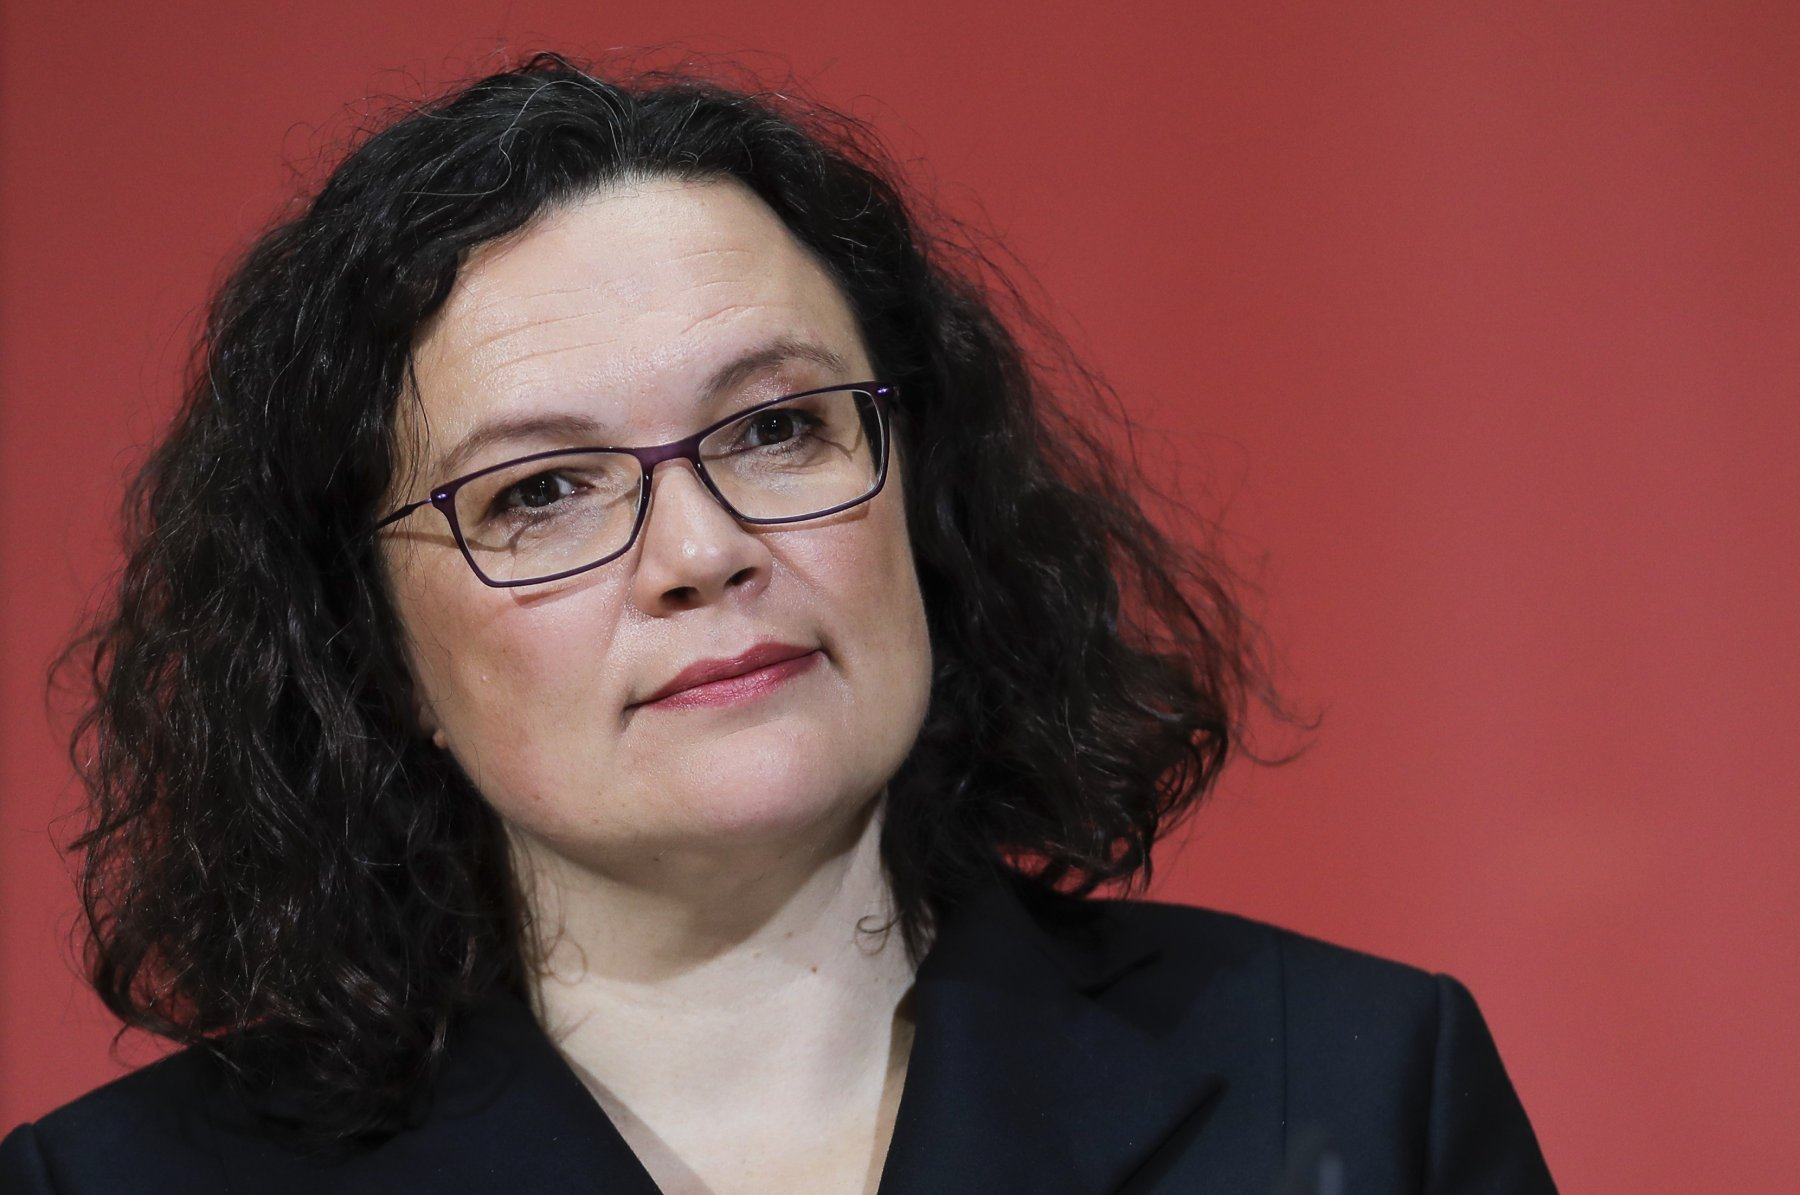 SPD-Chefin Andrea Nahles im Willy-Brandt-Haus